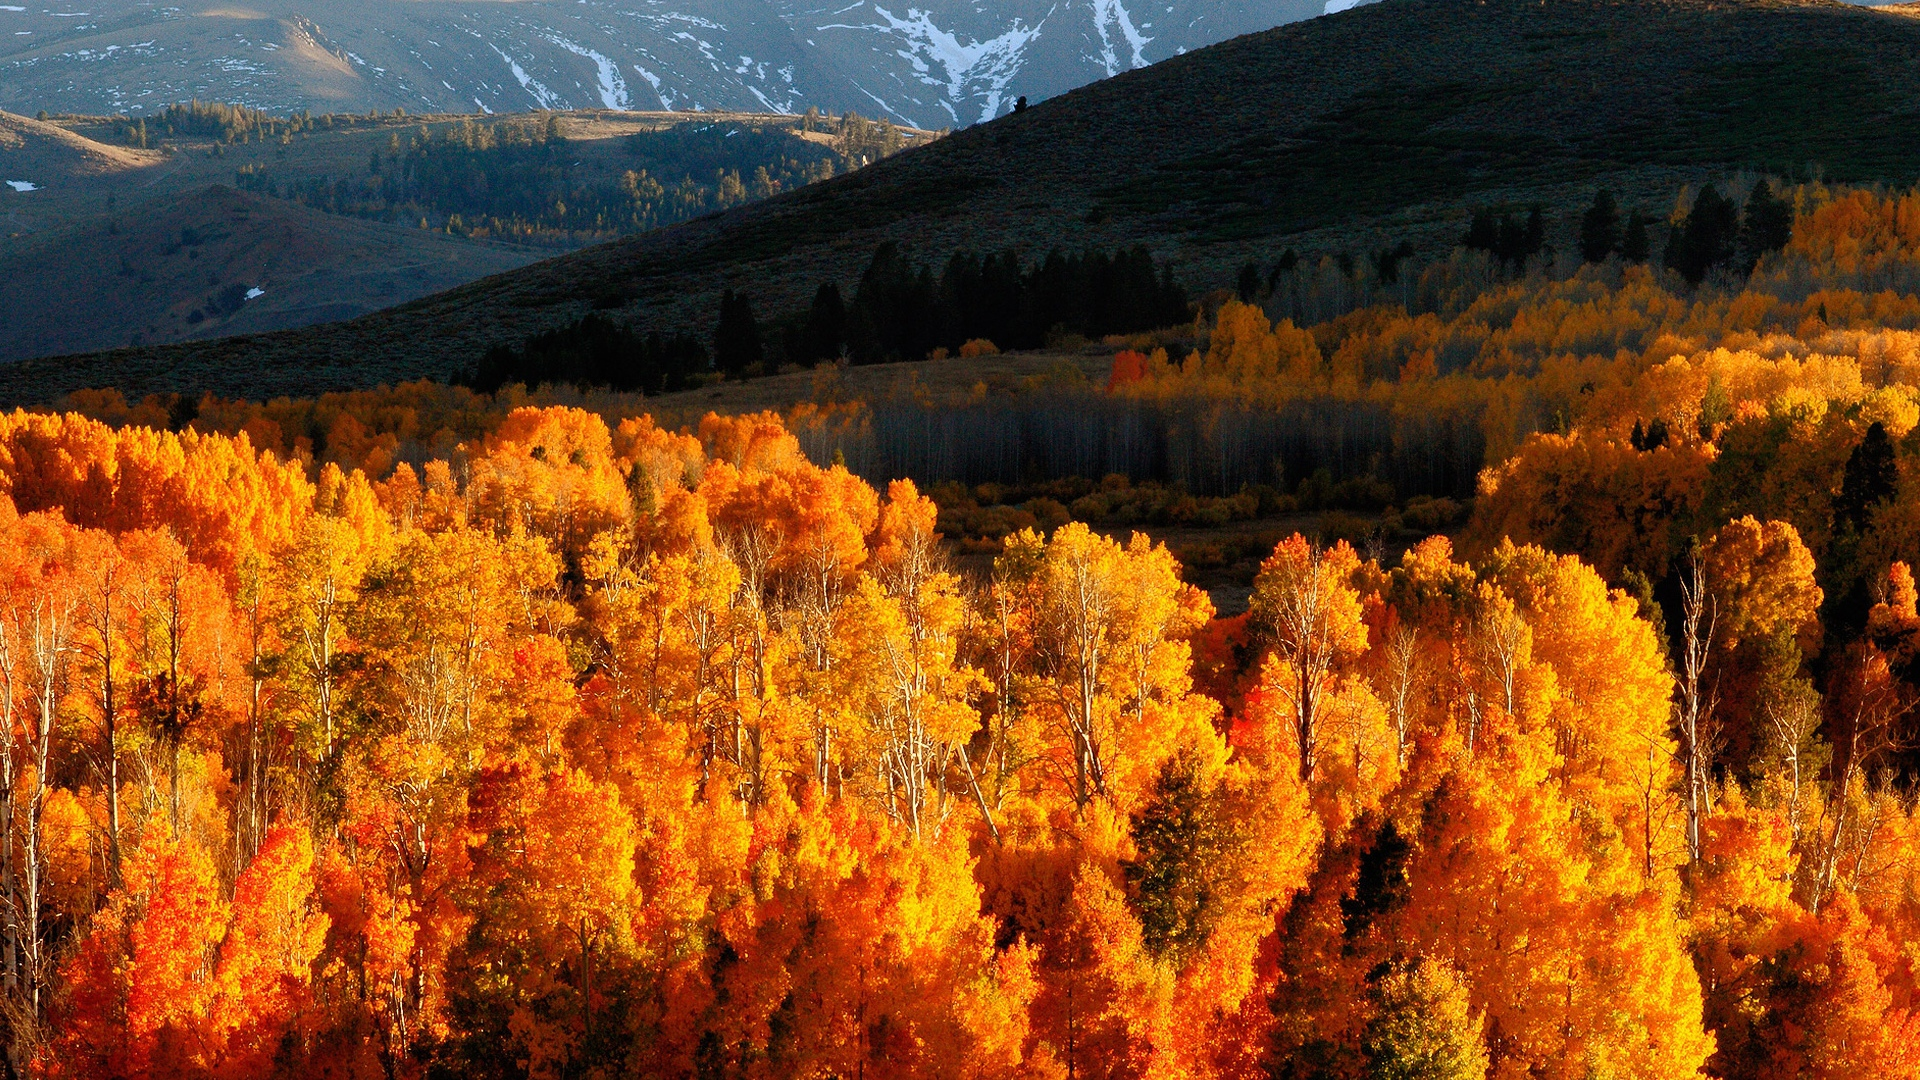 Download Wallpaper 1920x1080 Autumn Trees Gold Mountains Light Hills Slopes October Full HD 1080p Background